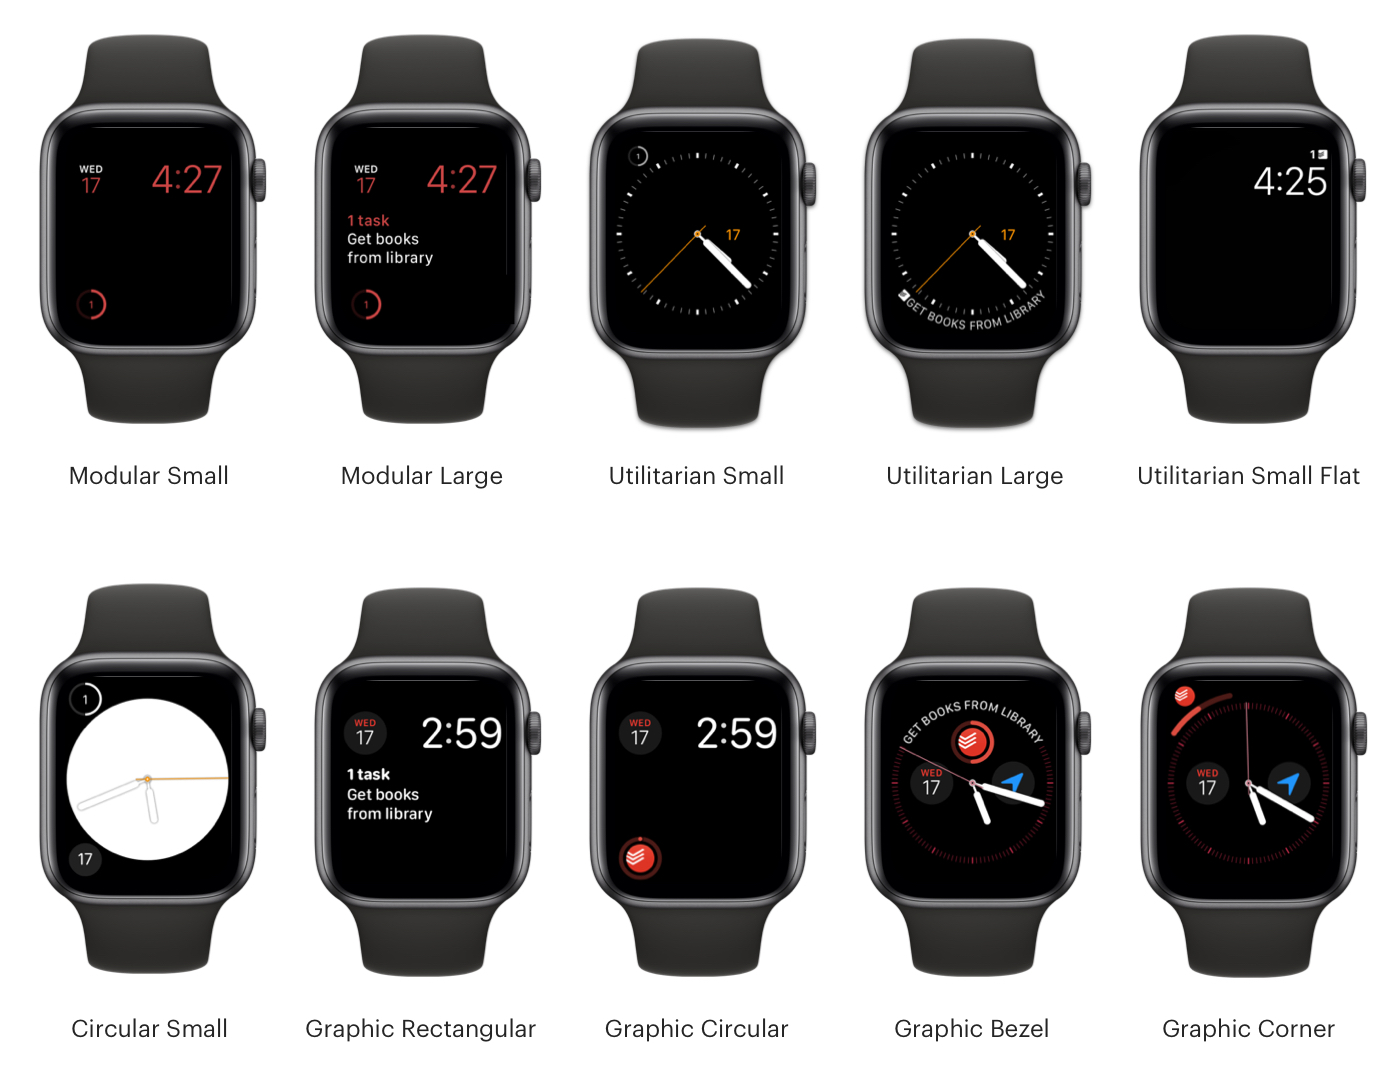 apple-watch-complications2-2.jpg